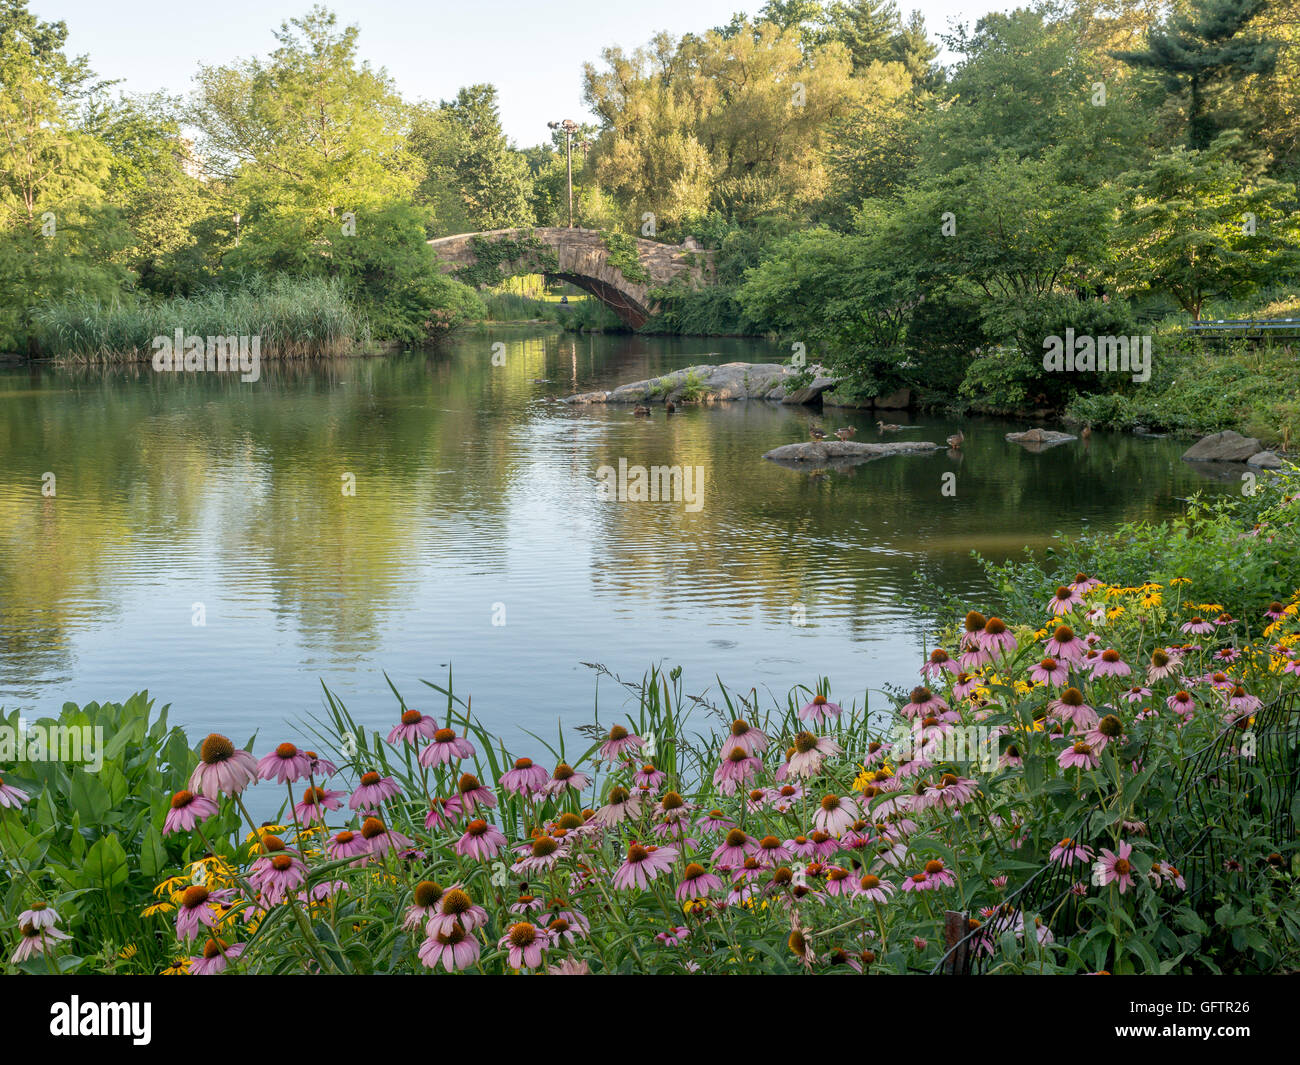 Gapstow bridge in Central Park on pond with flowers in summer in early morning - Stock Image